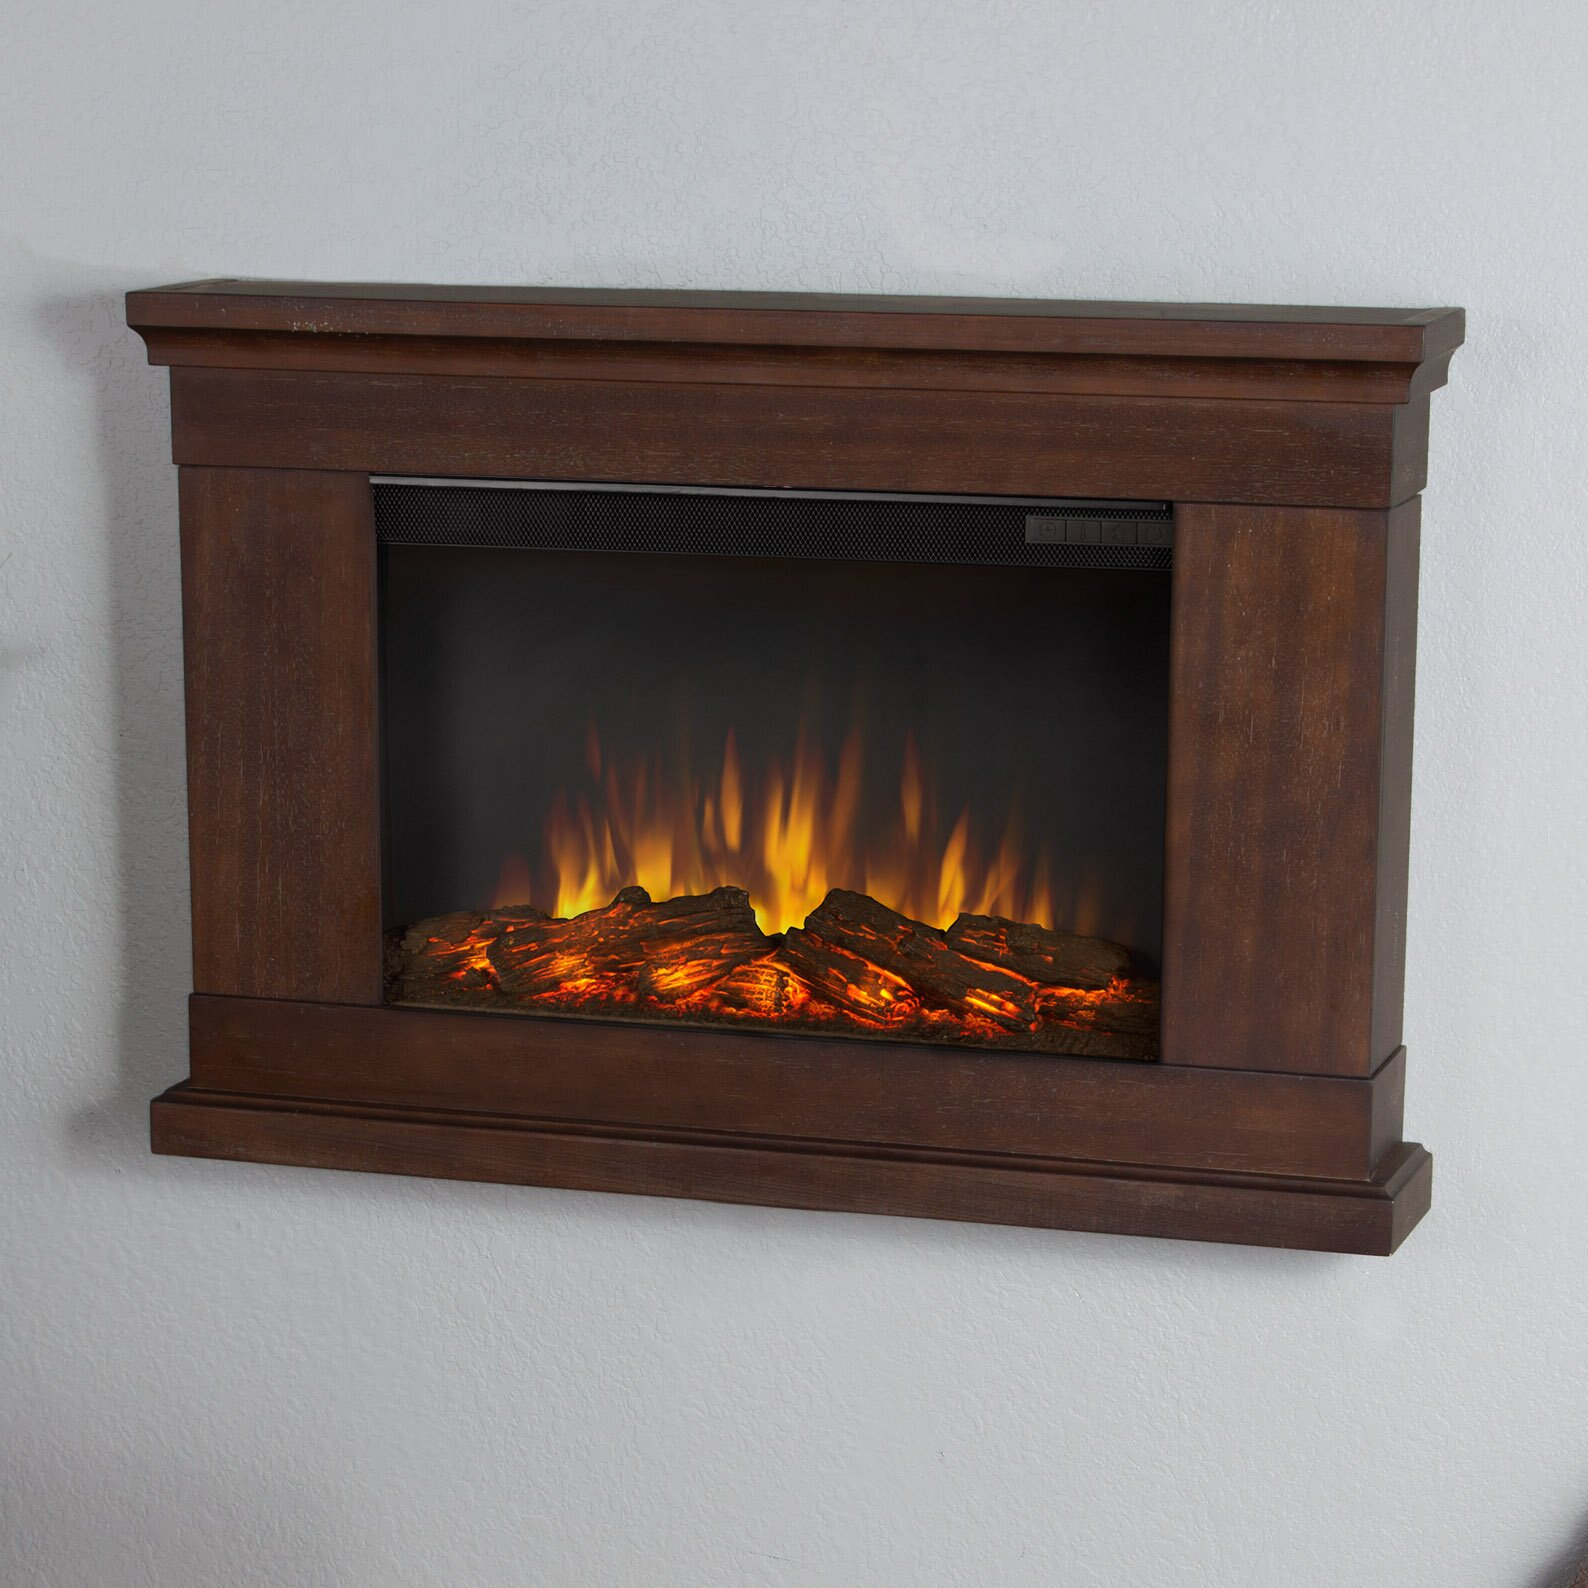 Real Flame Slim Wall Mount Electric Fireplace Reviews